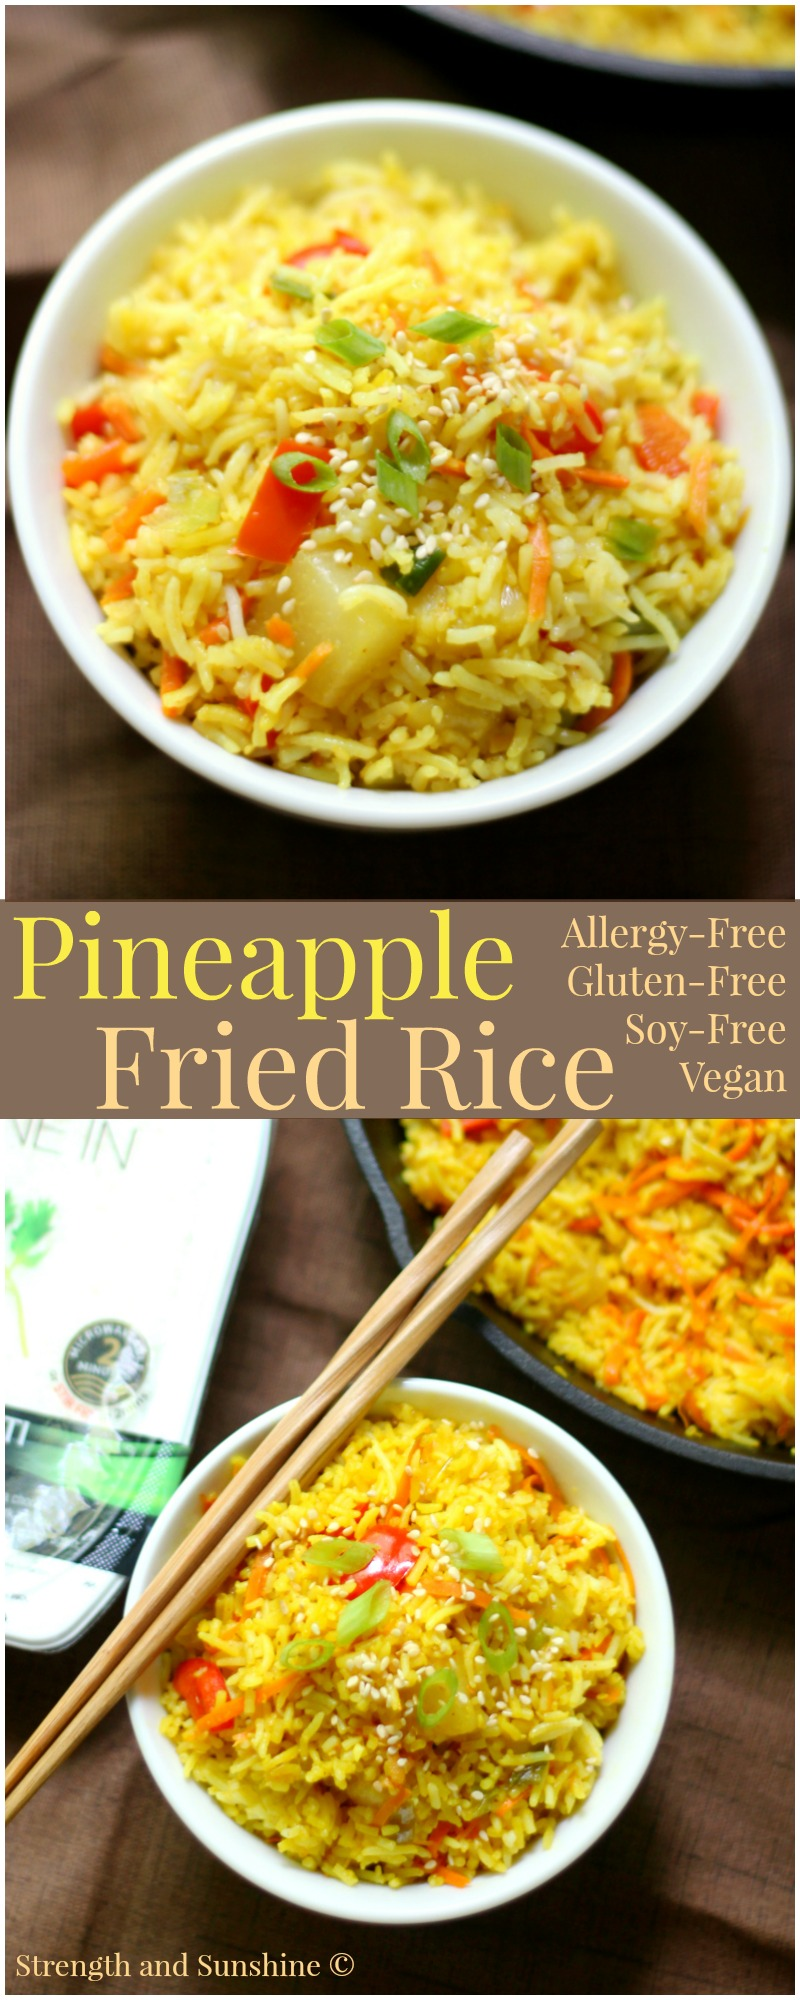 Gluten-Free Pineapple Fried Rice (Allergy-Free, Vegan) | Strength and Sunshine @RebeccaGF666 Super easy gluten-free, soy-free, allergy-free, vegan fried rice at home! Pineapple Fried Rice that's made on the stove in a cast iron skillet in just a few minutes! A great healthy recipe for lunch, dinner, and some fantastic leftovers!